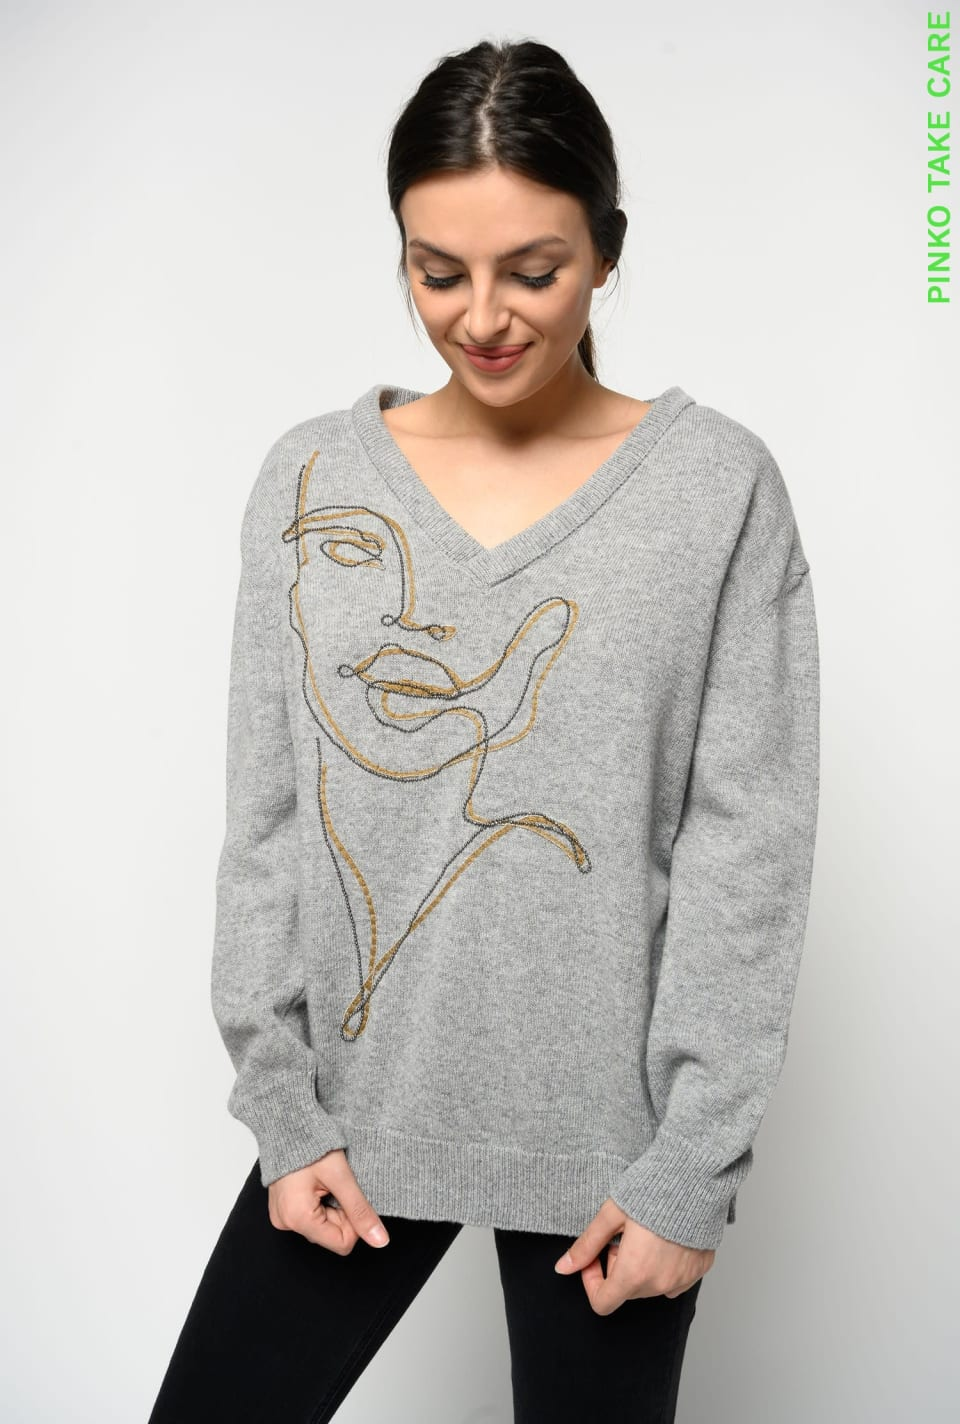 V-neckline pullover with PINKO for Maglidee embroidery - Pinko